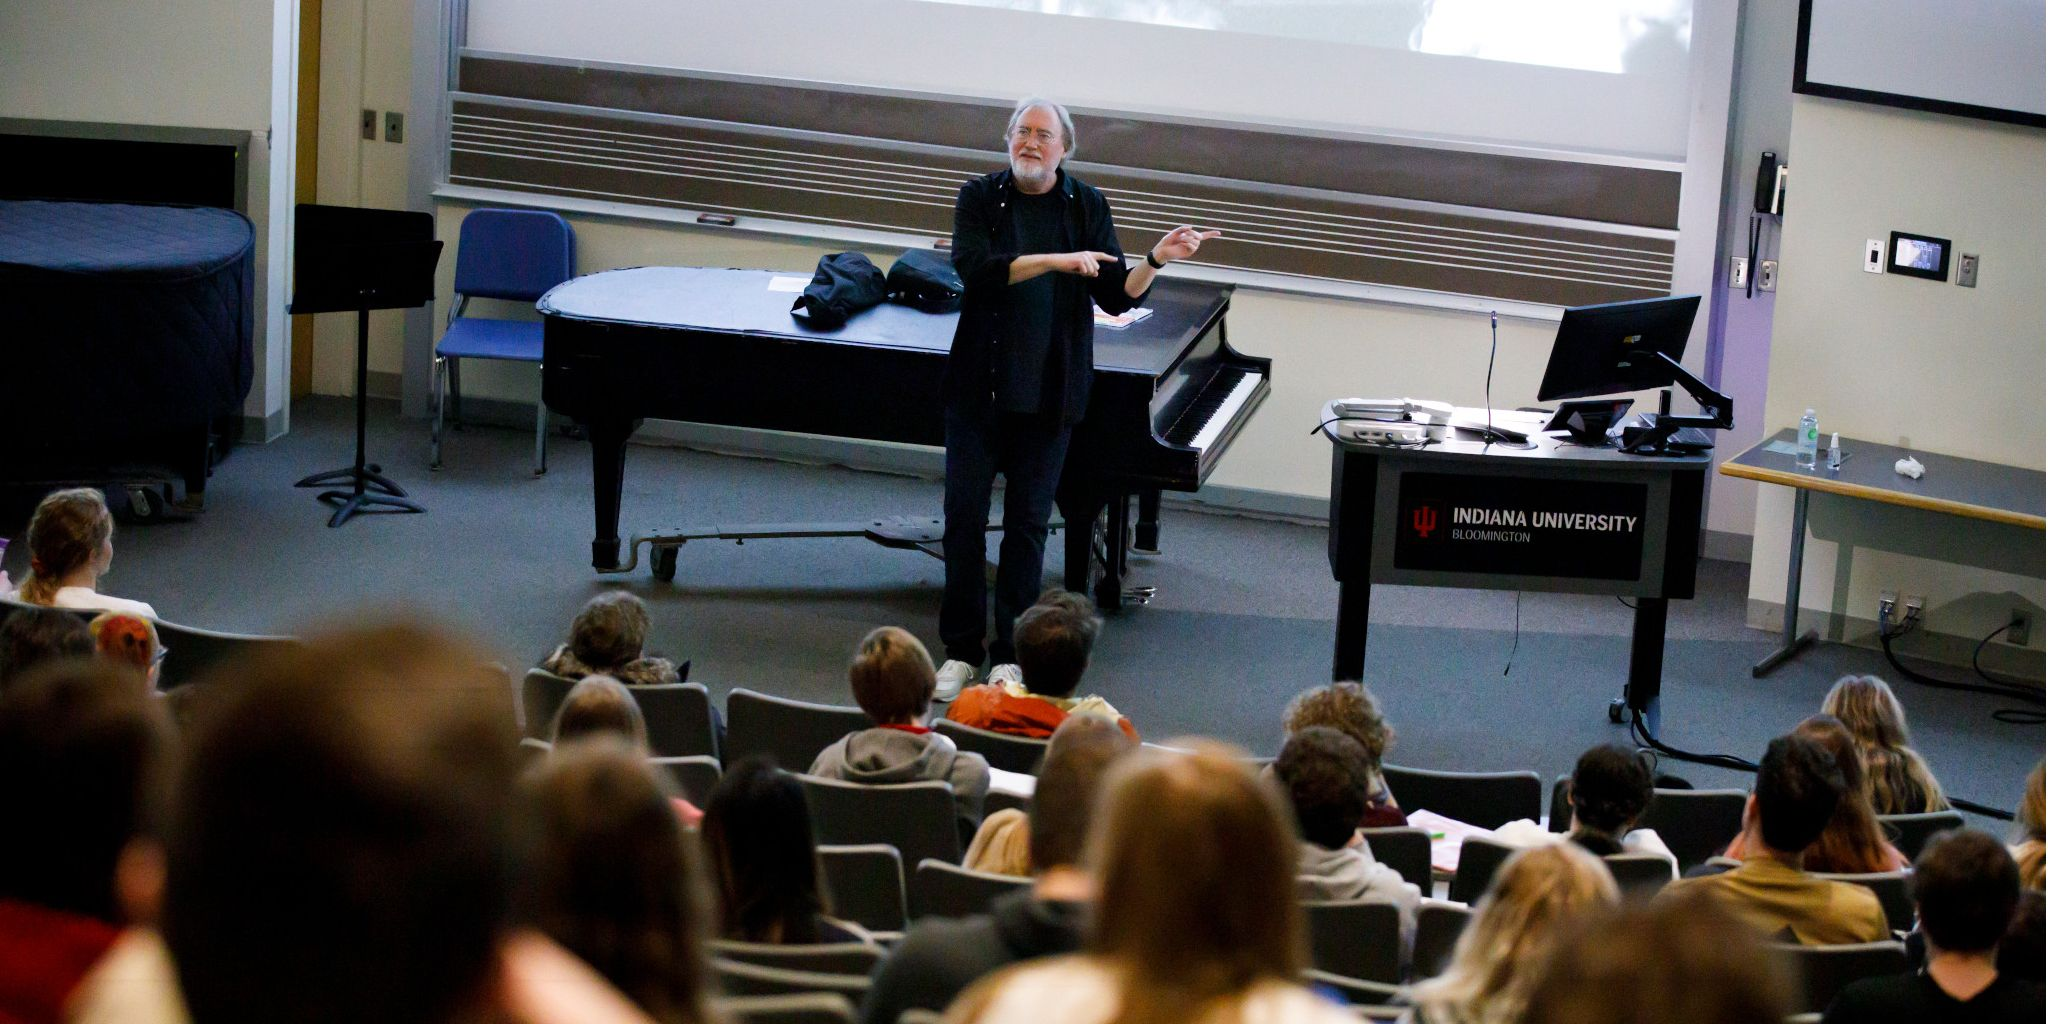 Glenn Gass teaches at the front of a lecture hall